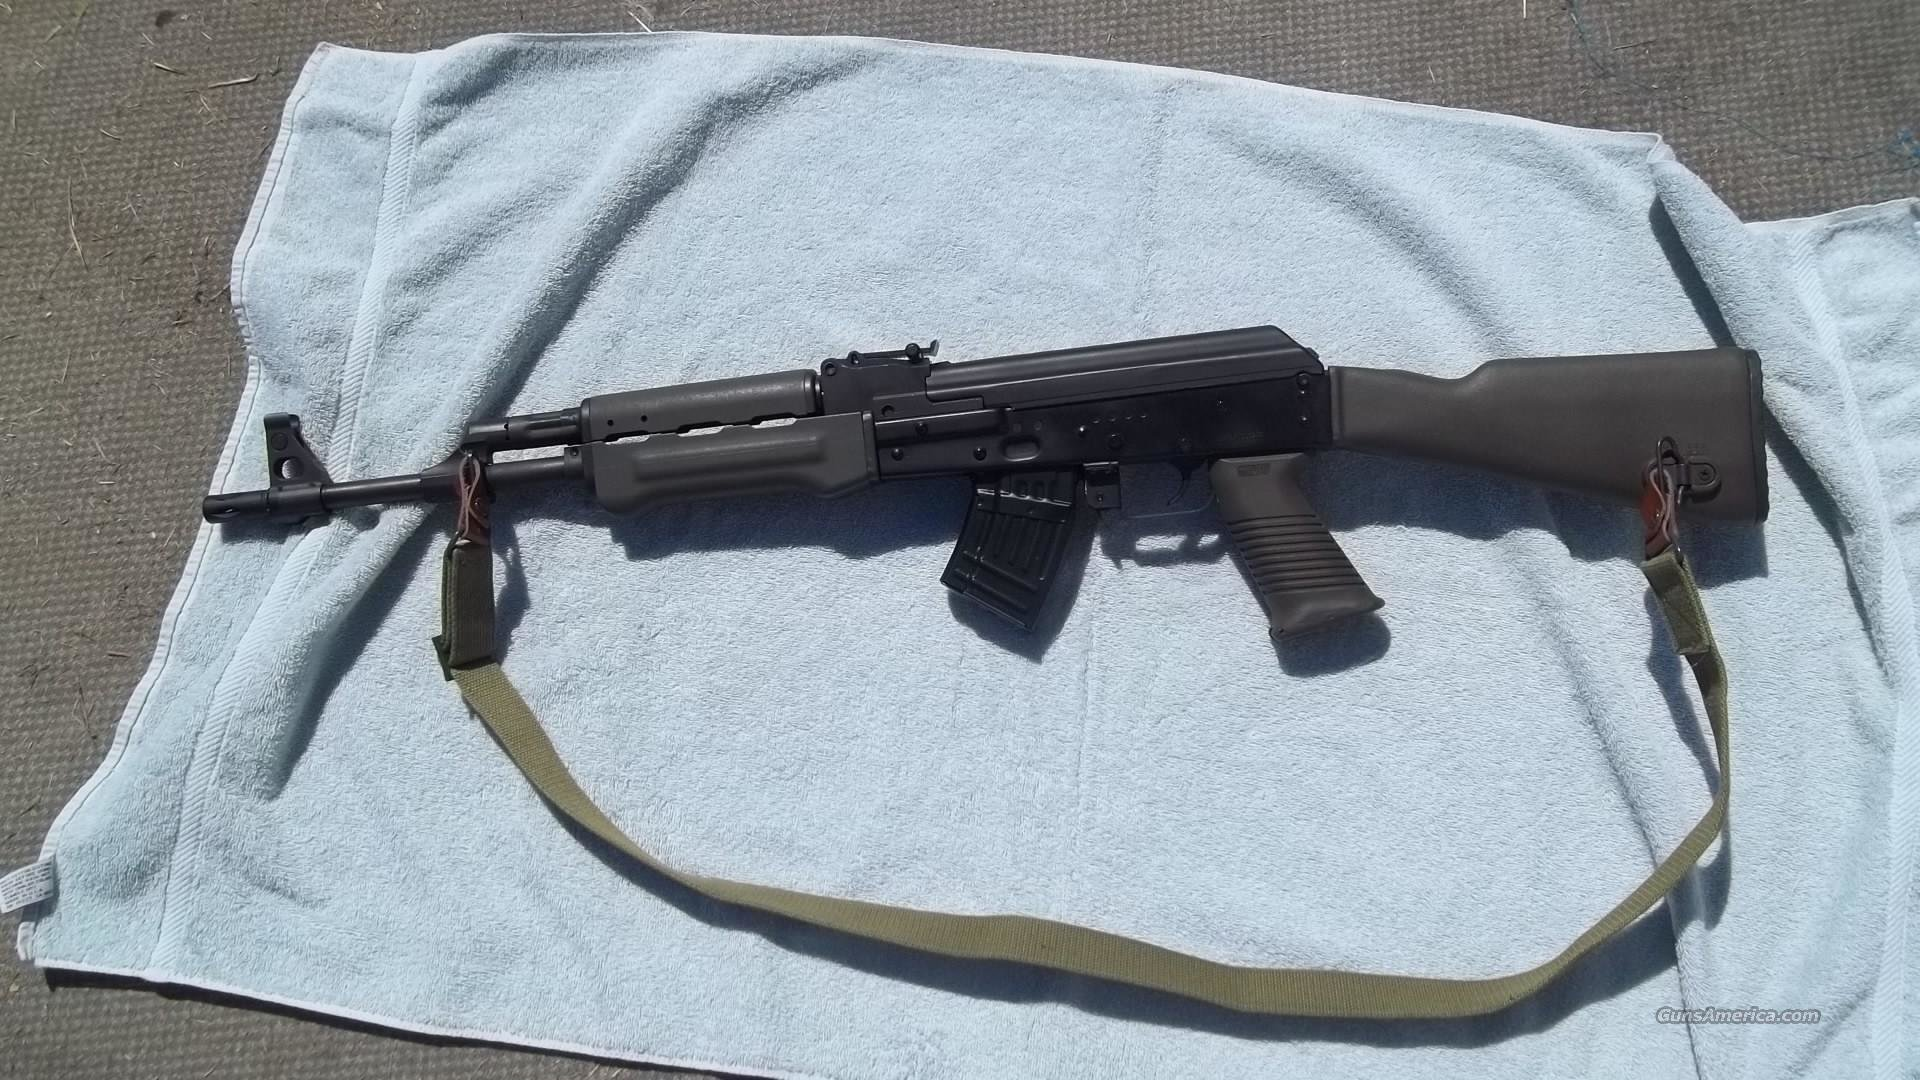 EAA PAP(AK-47) OD GREEN  Guns > Rifles > AK-47 Rifles (and copies) > Full Stock